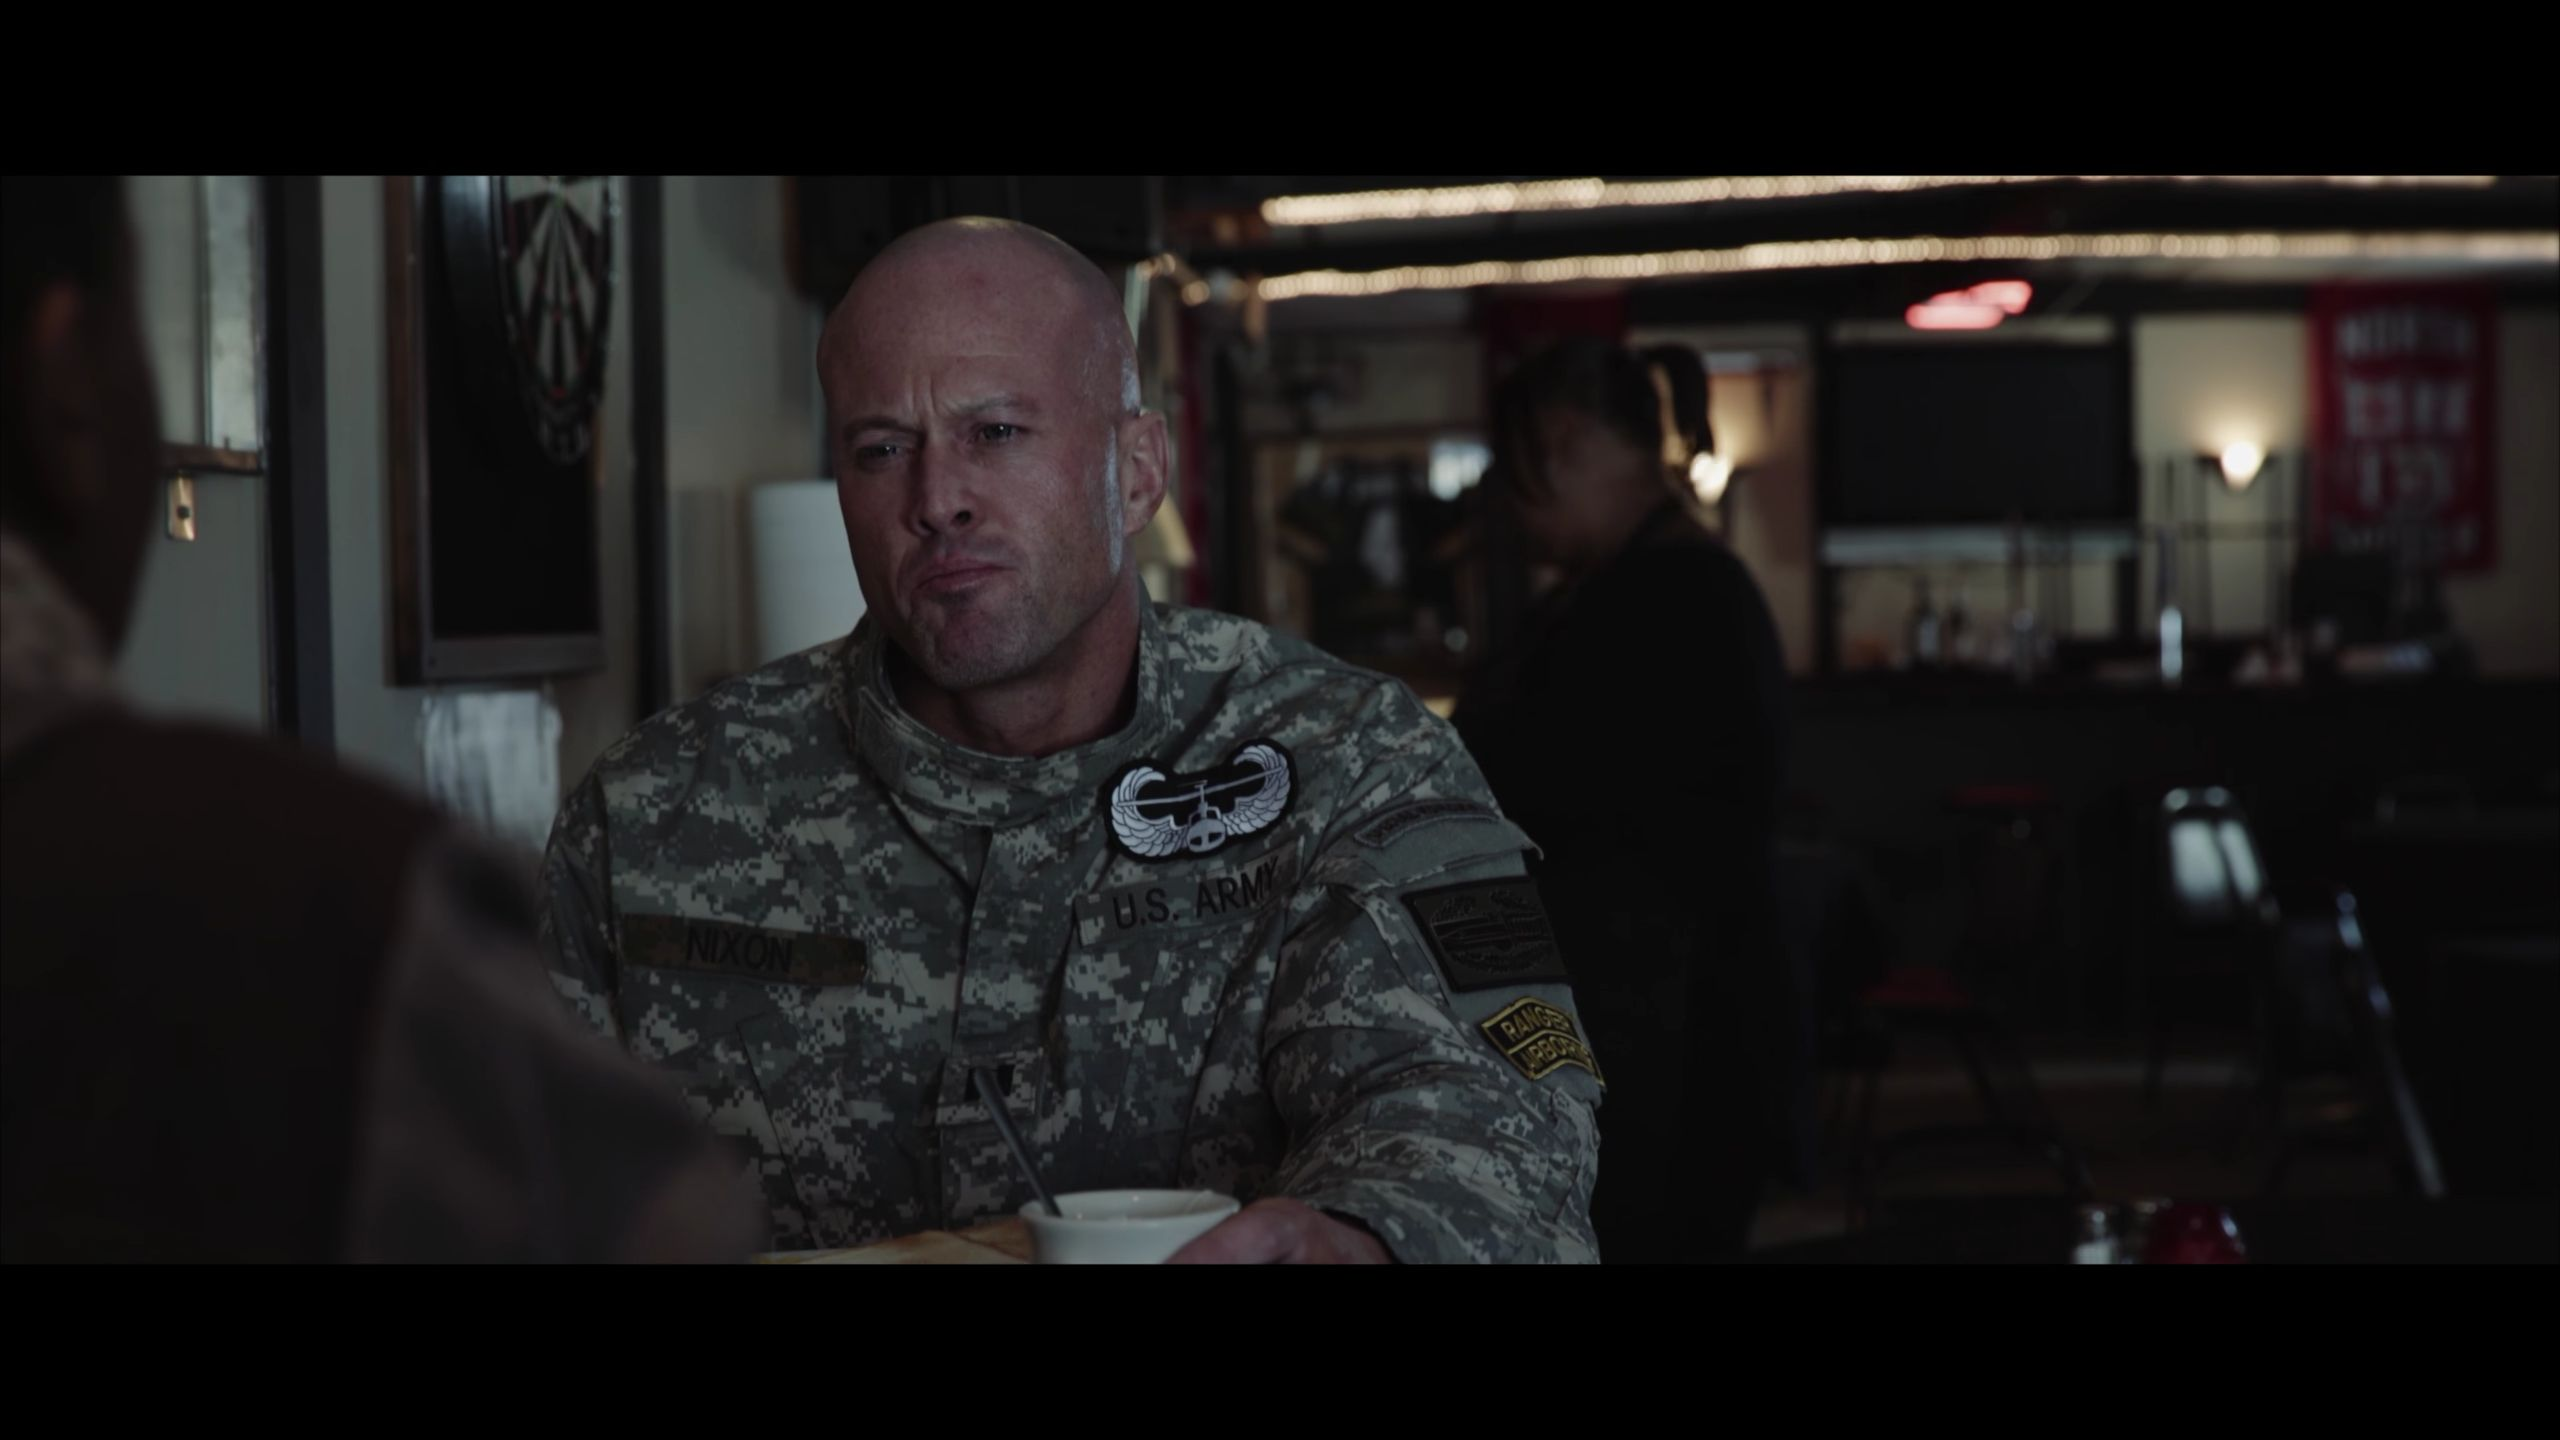 Actor John Joseph Quinlan as US Army Captain Jake Nixon with Tasha Holmes #JohnQuinlan